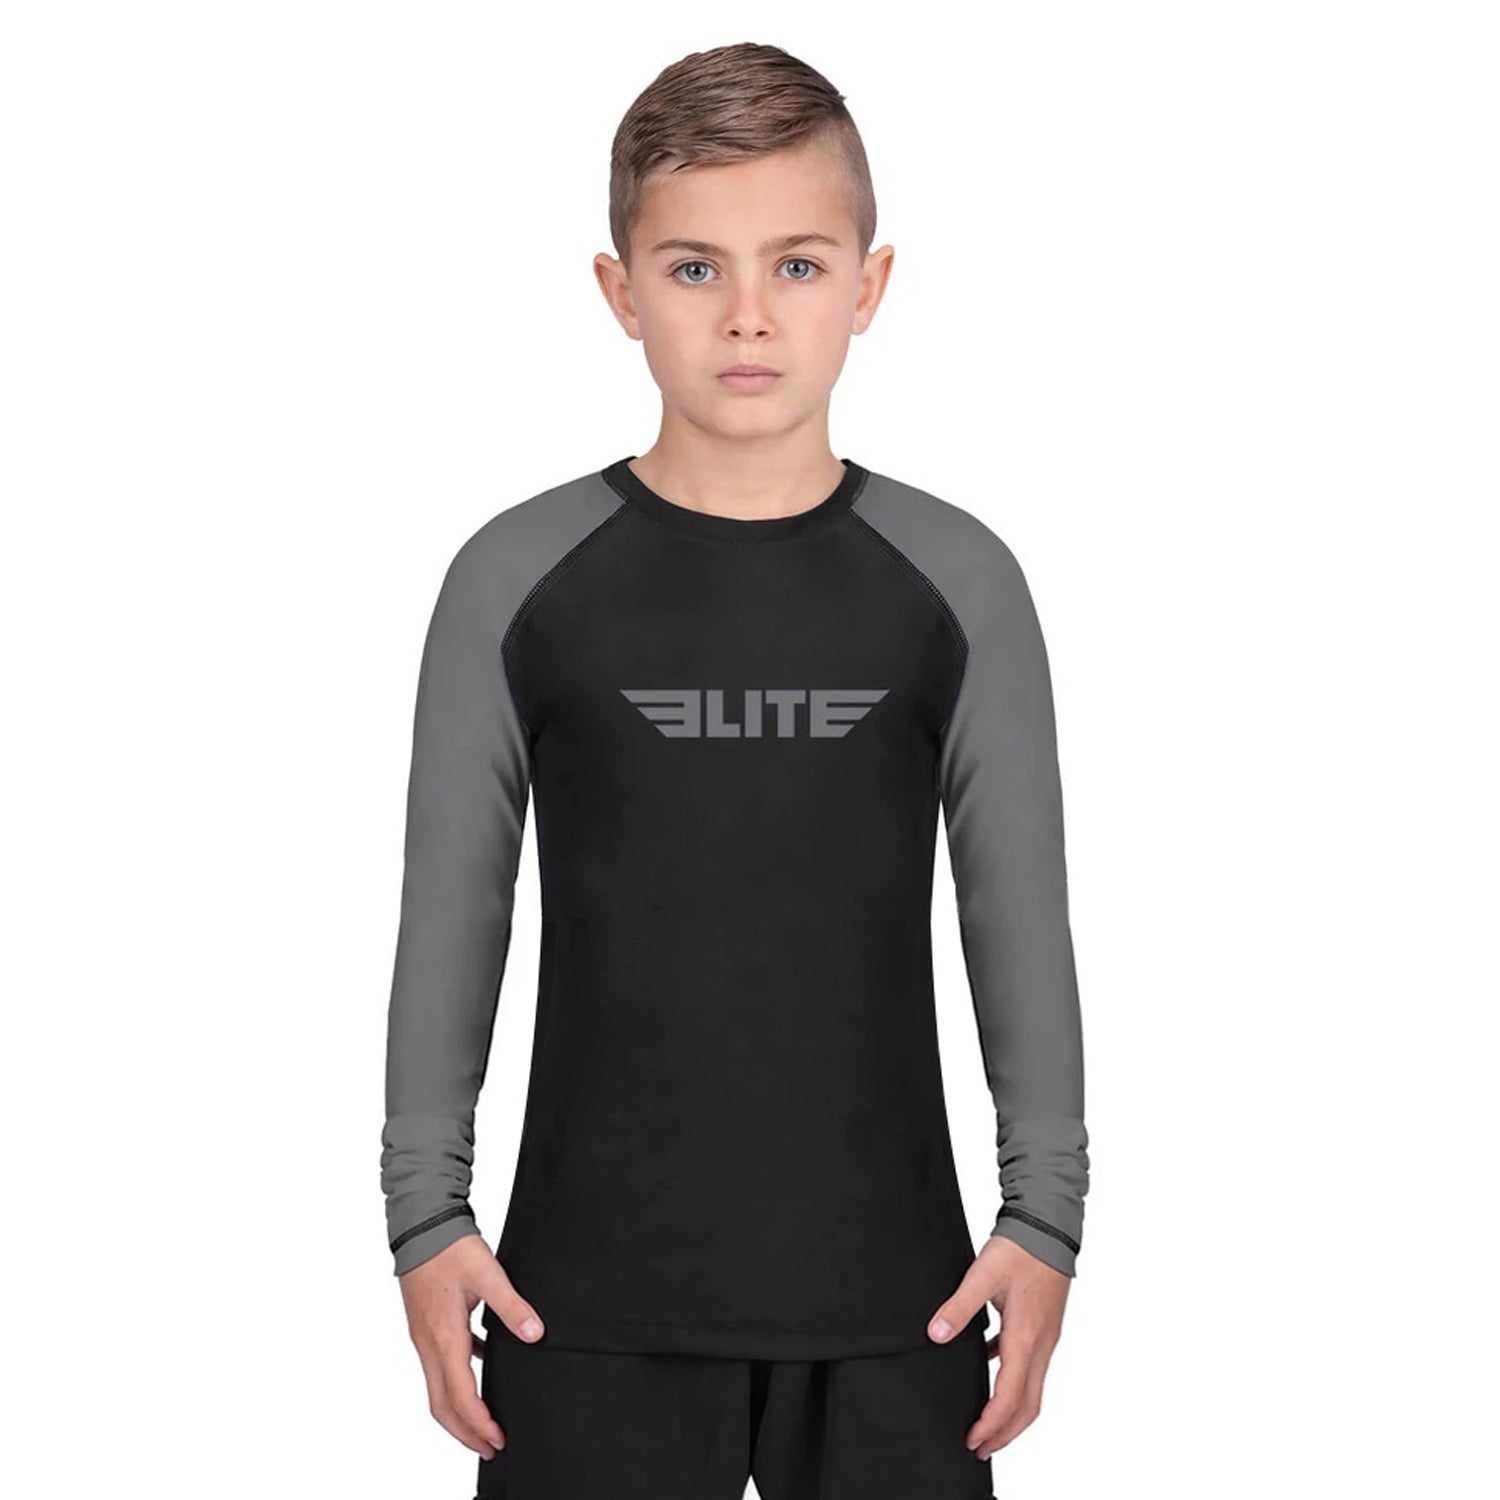 Elite Sports Standard Gray/Black Long Sleeve Kids BJJ Rash Guard